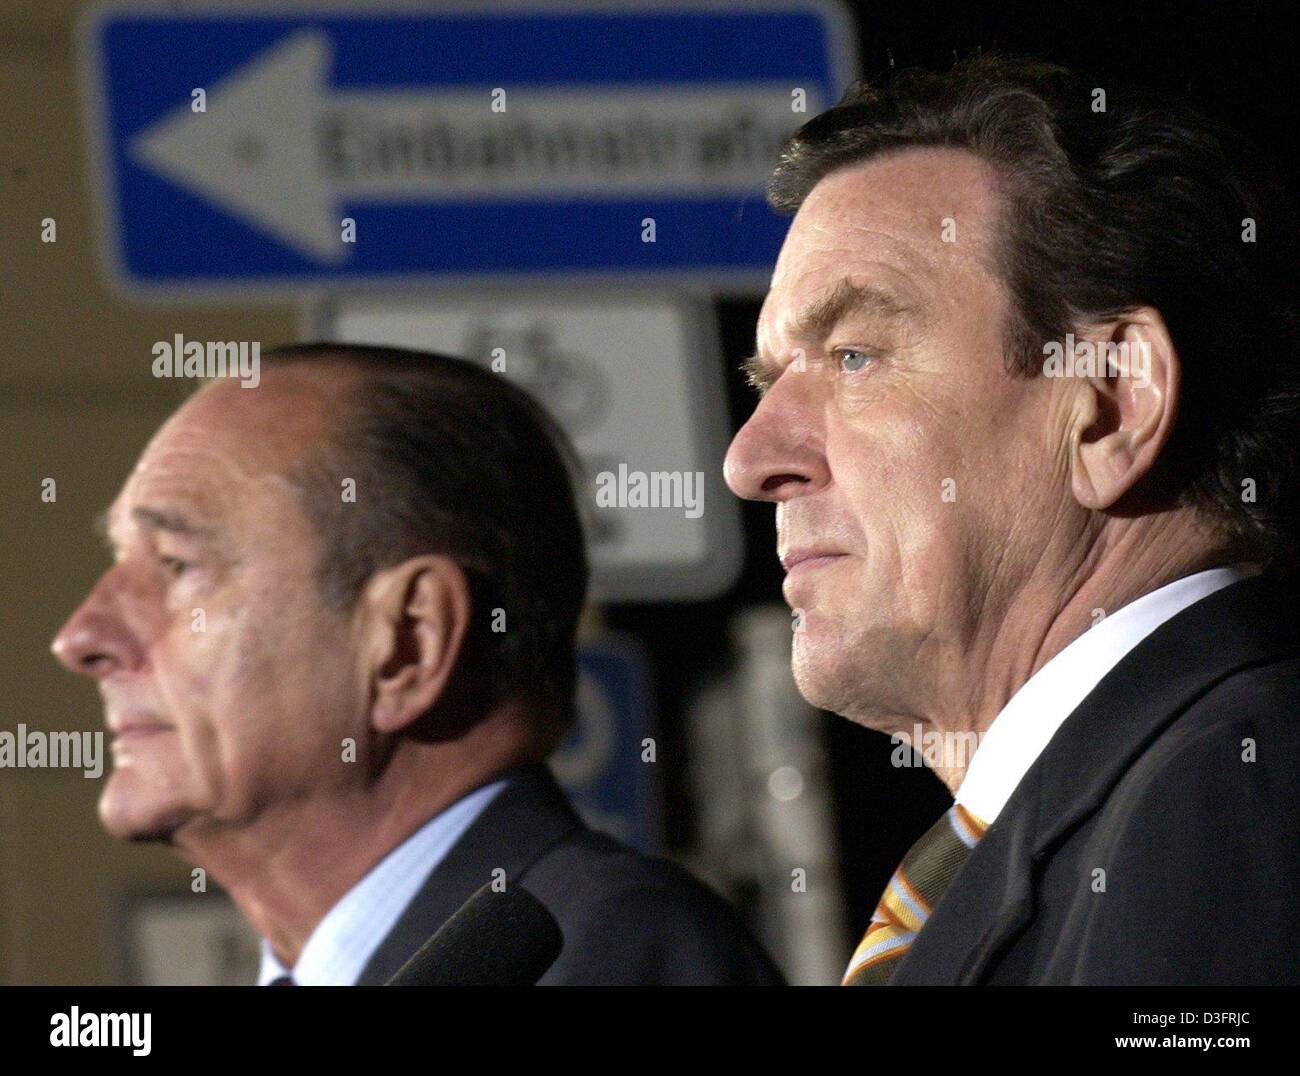 (dpa) - French President Jacques Chirac (L) and German Chancellor Gerhard Schroeder (R) are standing in front of - Stock Image